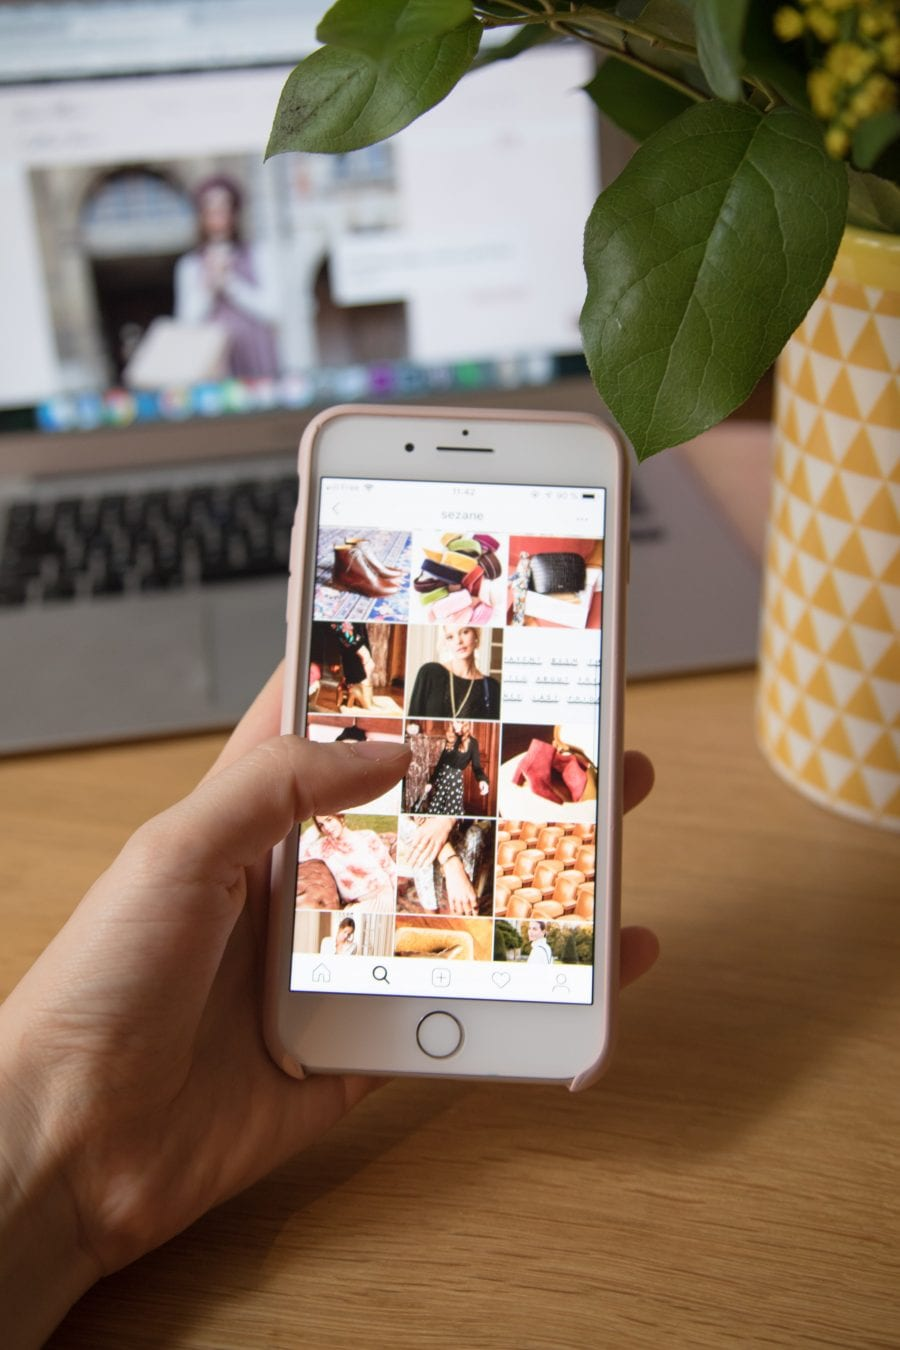 Instagram et la surconsommation - Billet d'humeur - Minimalisme et Instagram / Blog-mode-some-place-called-home